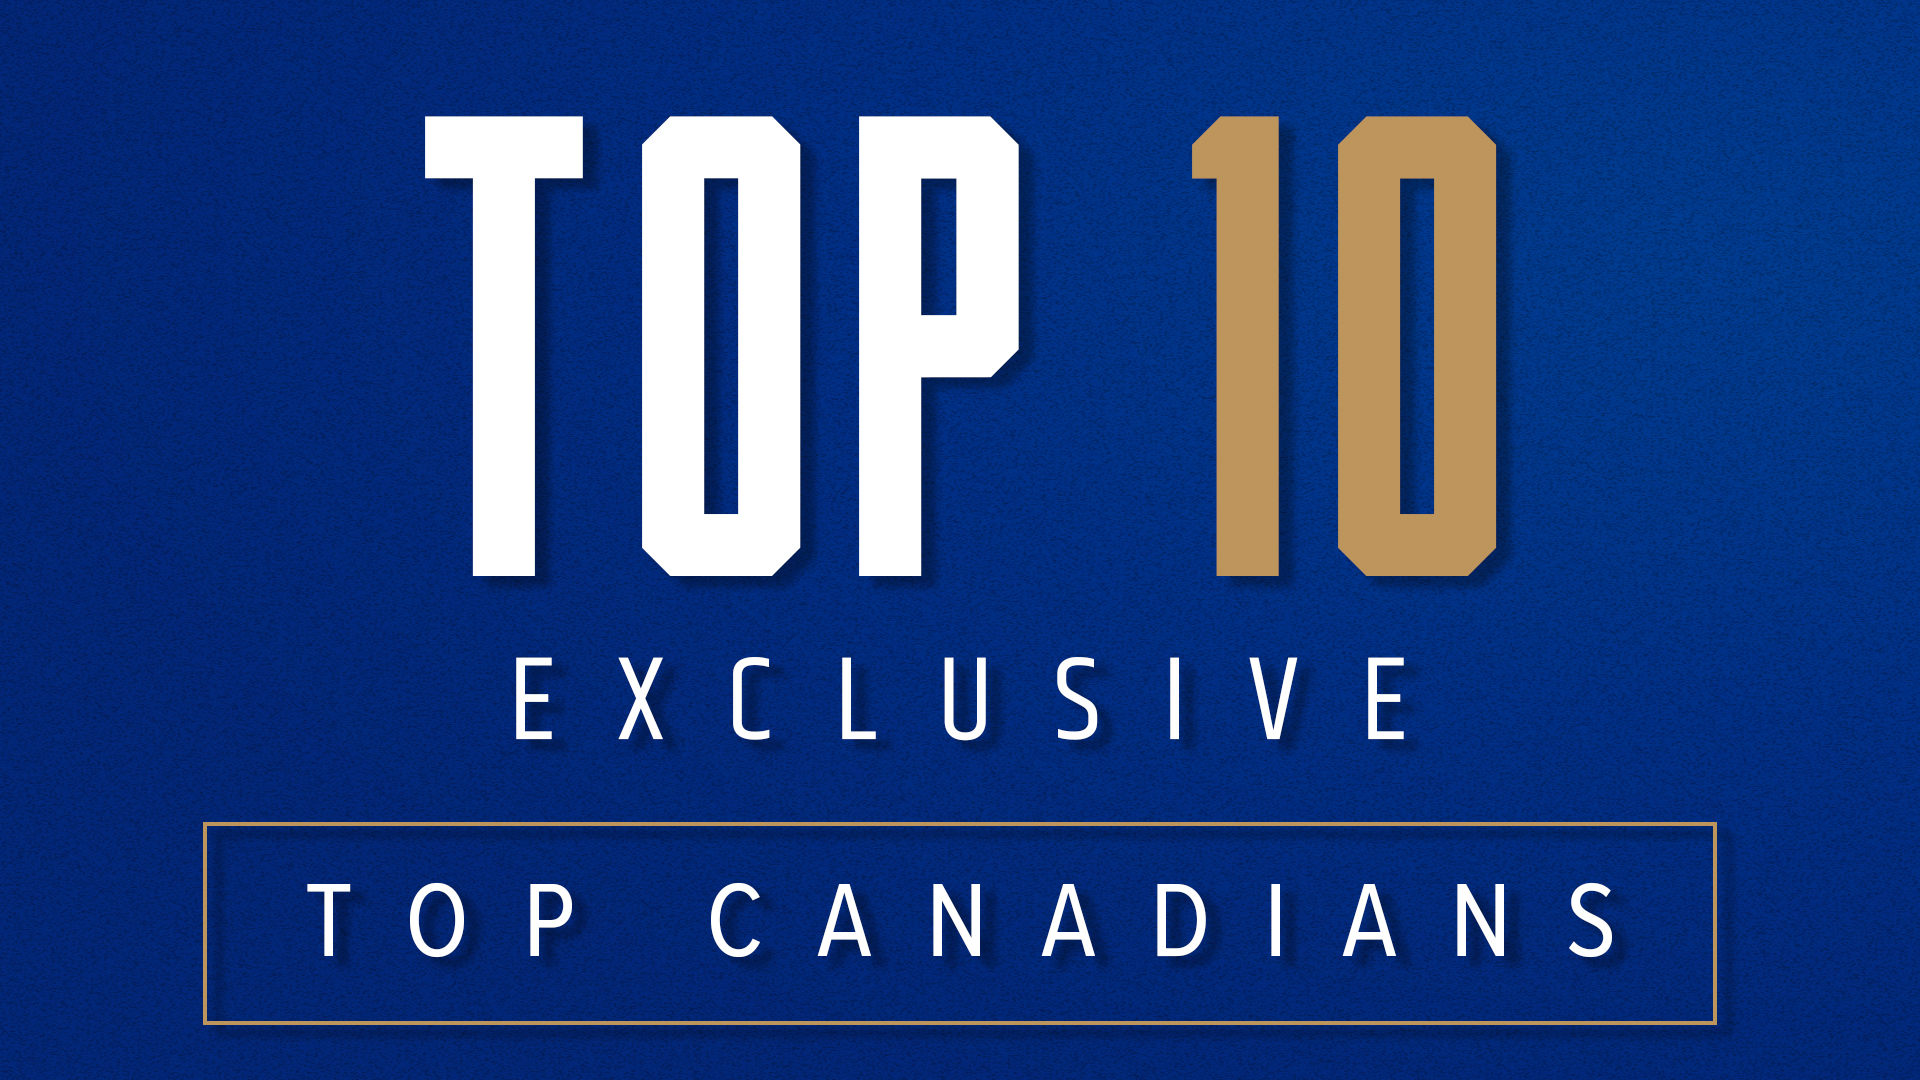 Top 10 Canadians